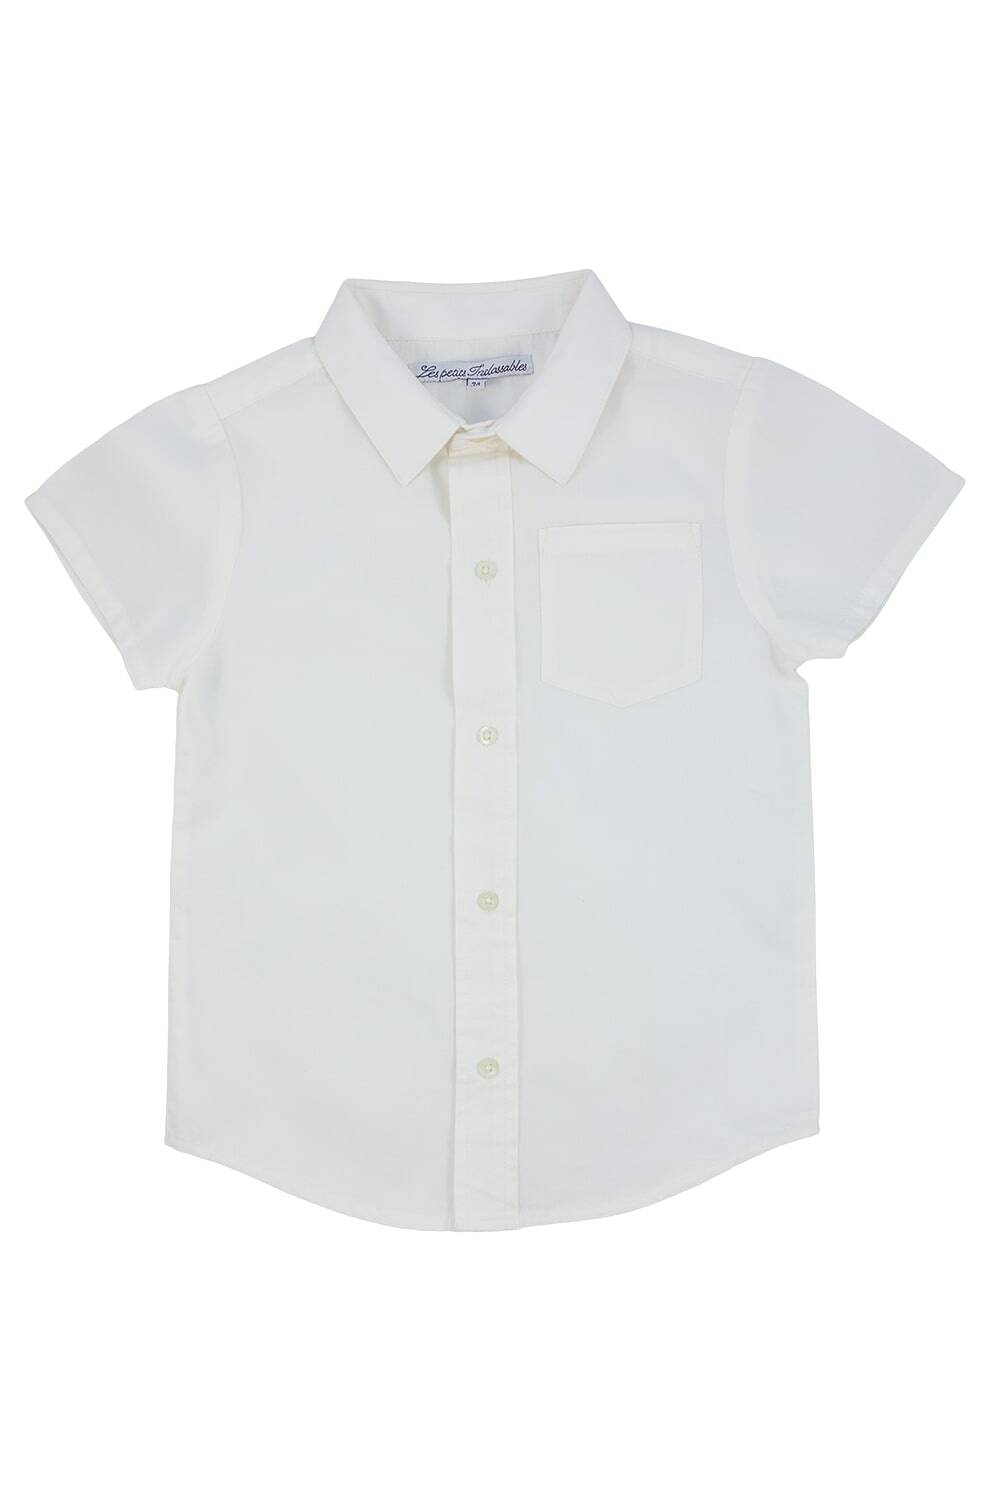 BeeBoo|BeeBoo Les petits Inclassables Chemise Marius ivoire